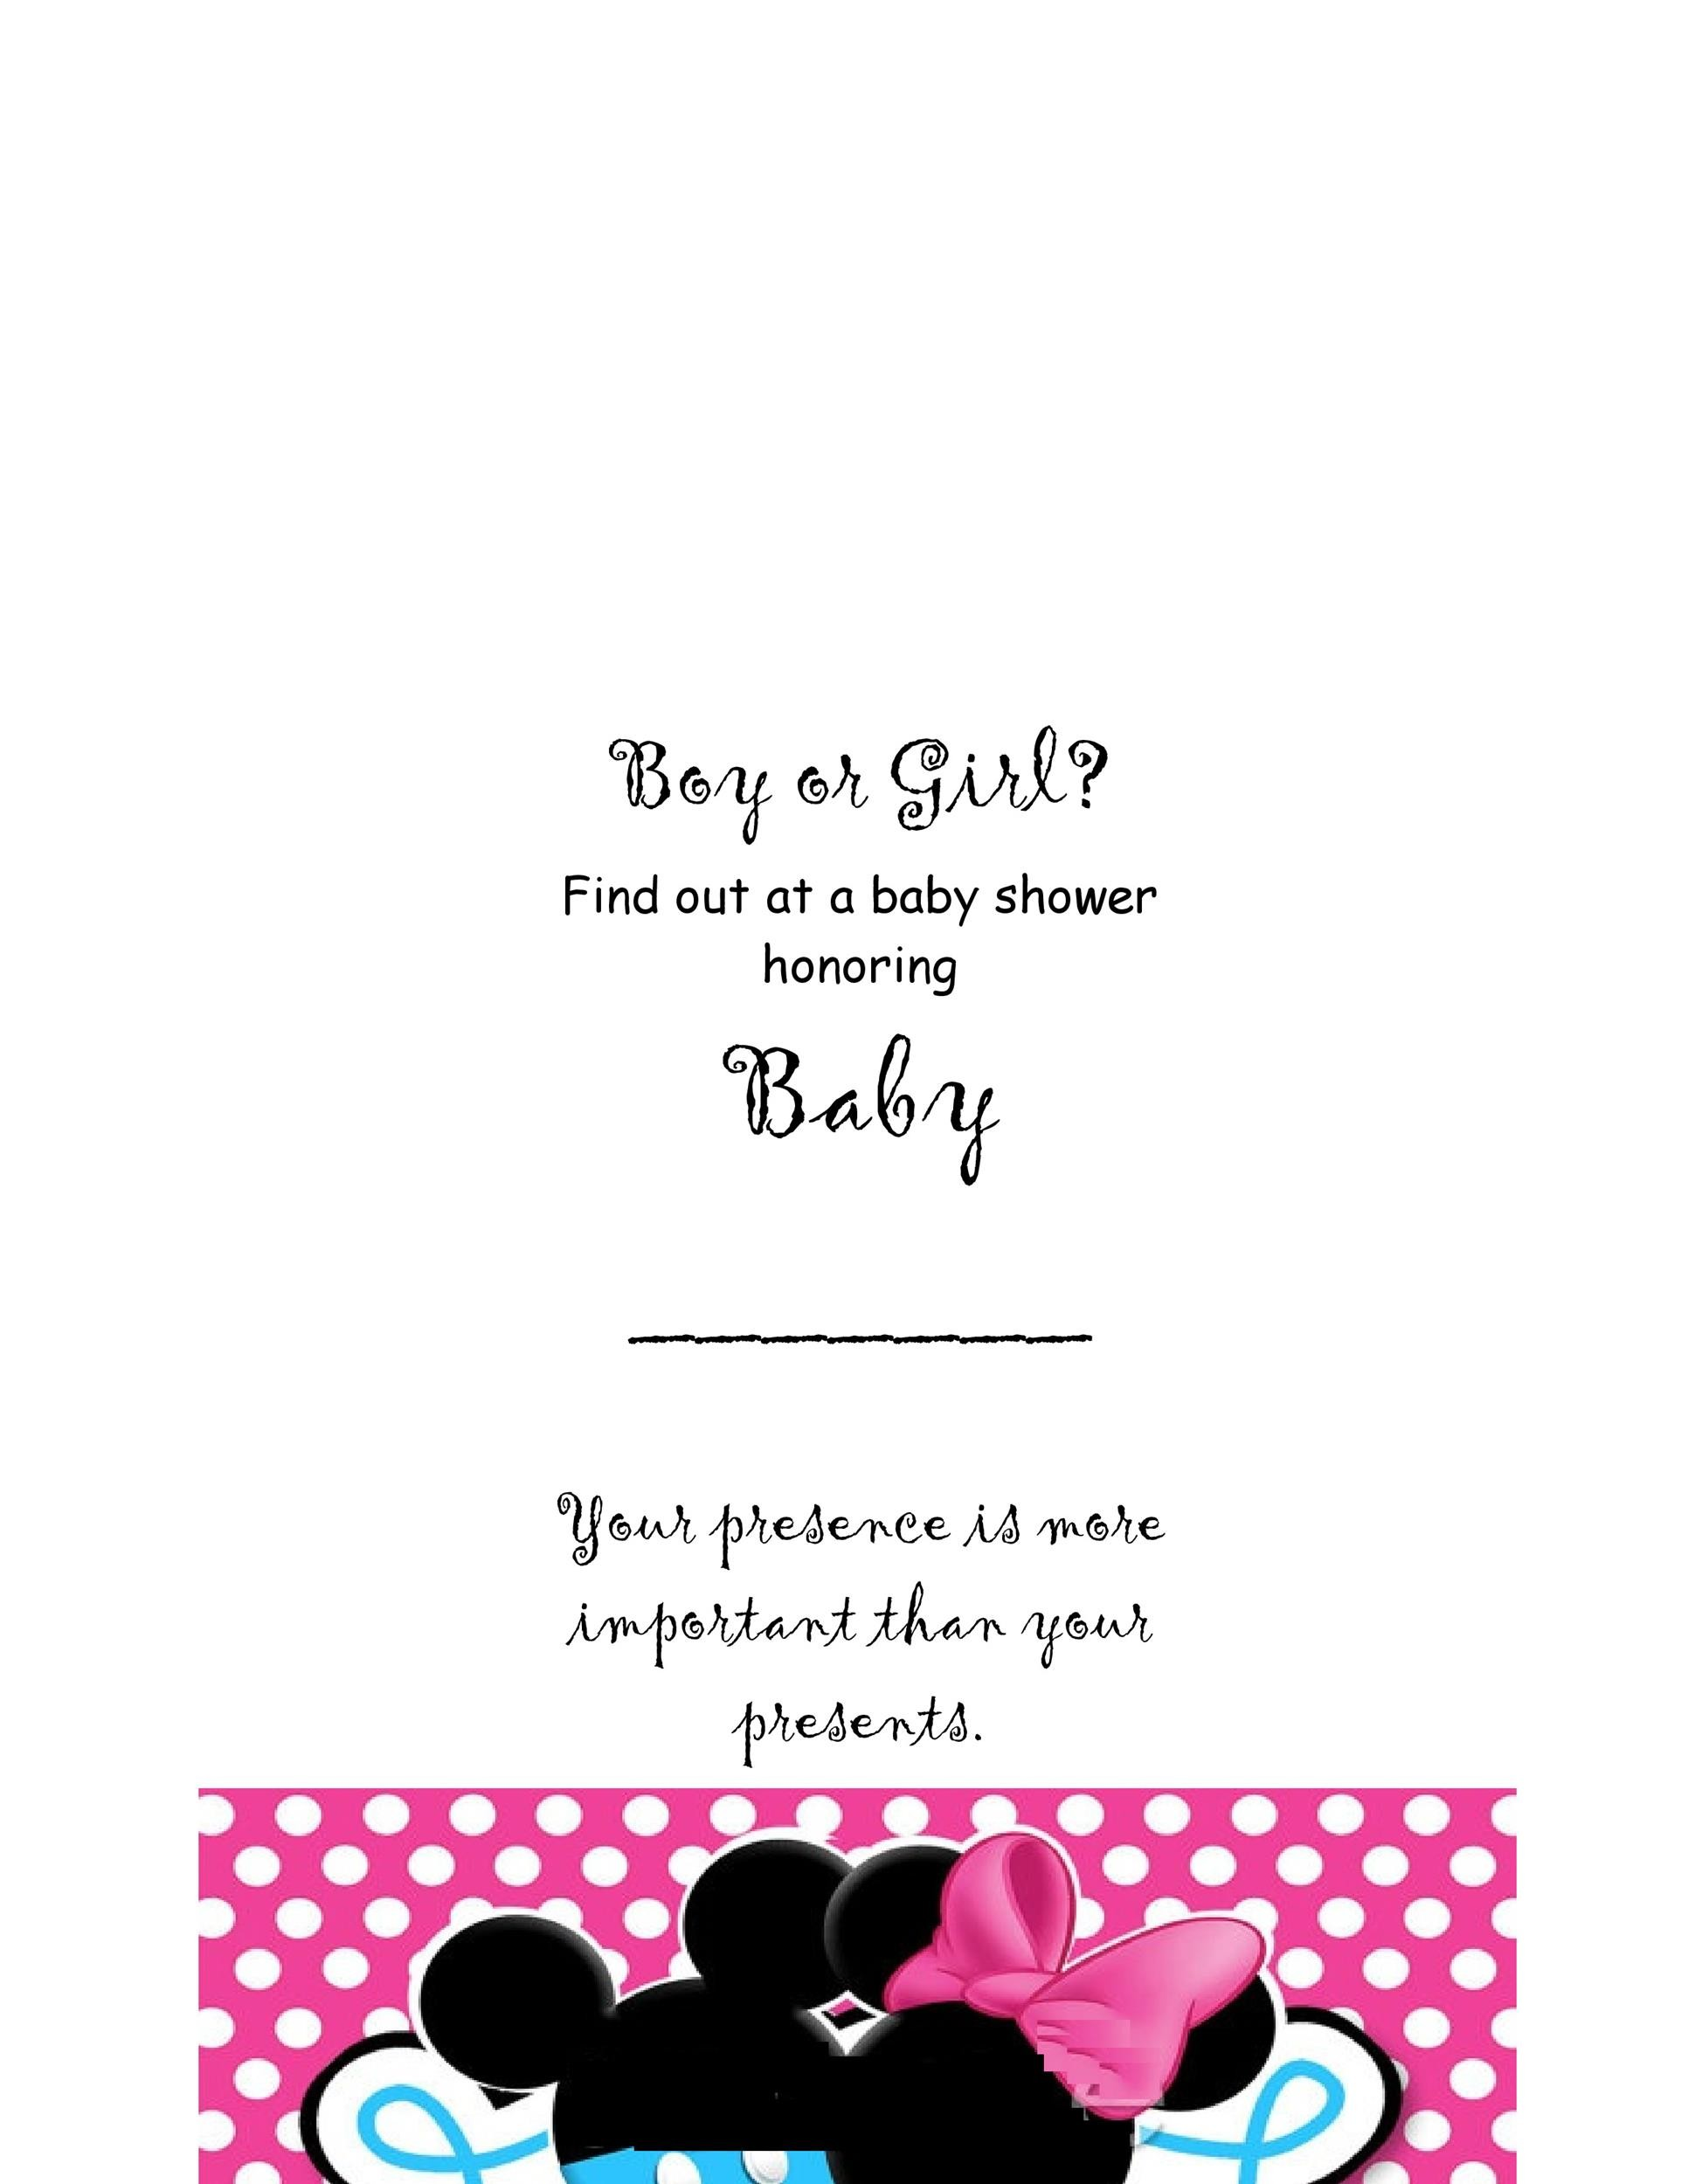 17 Free Gender Reveal Invitation Templates - Template Lab - free template invitation